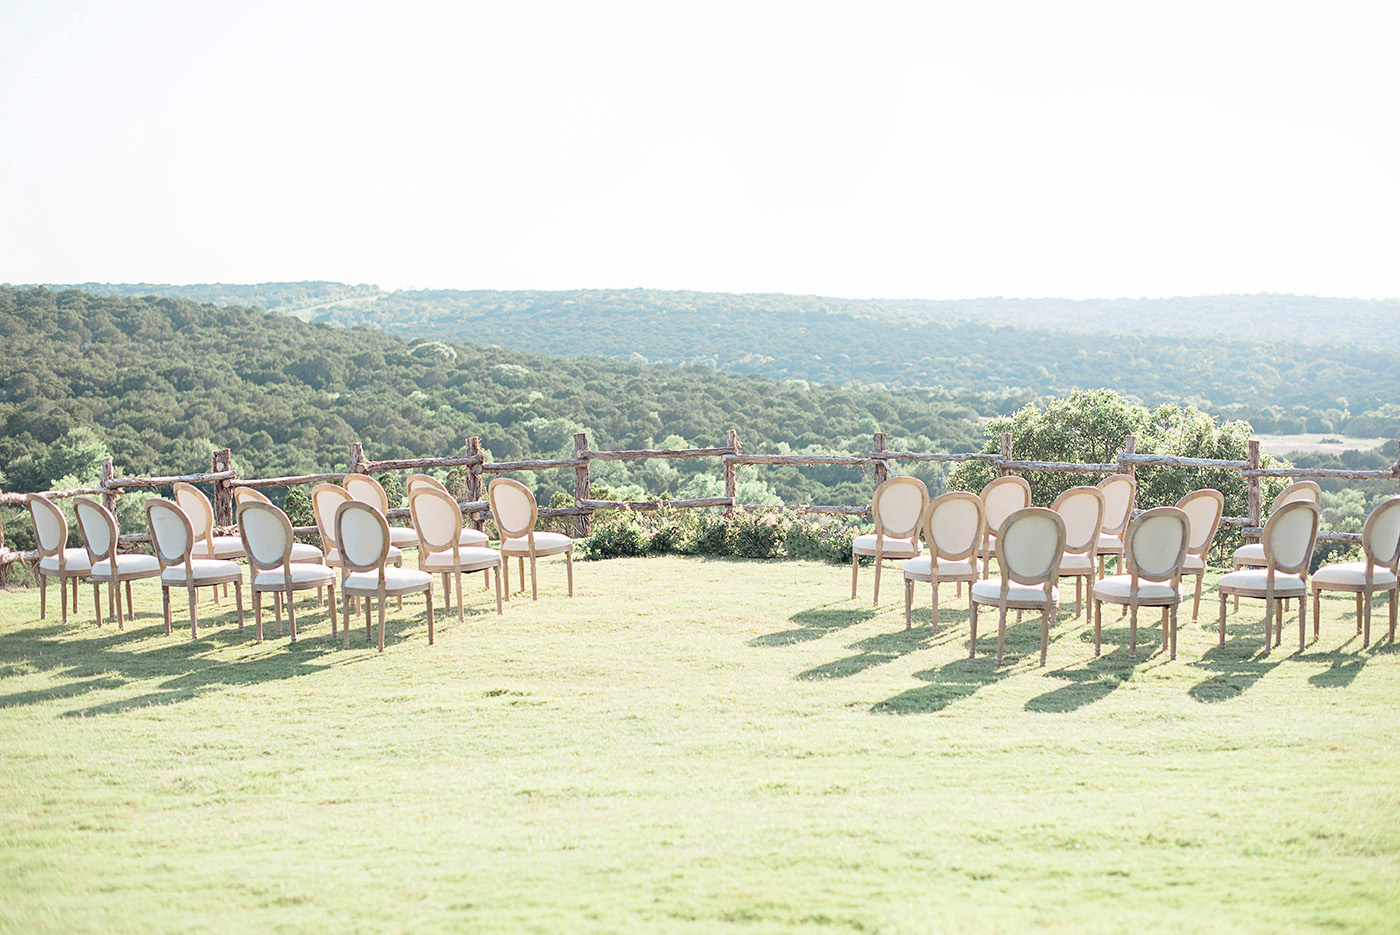 Whimsical Summer Vineyard Wedding Inspiration - Olive Grove Design - 00105.jpg